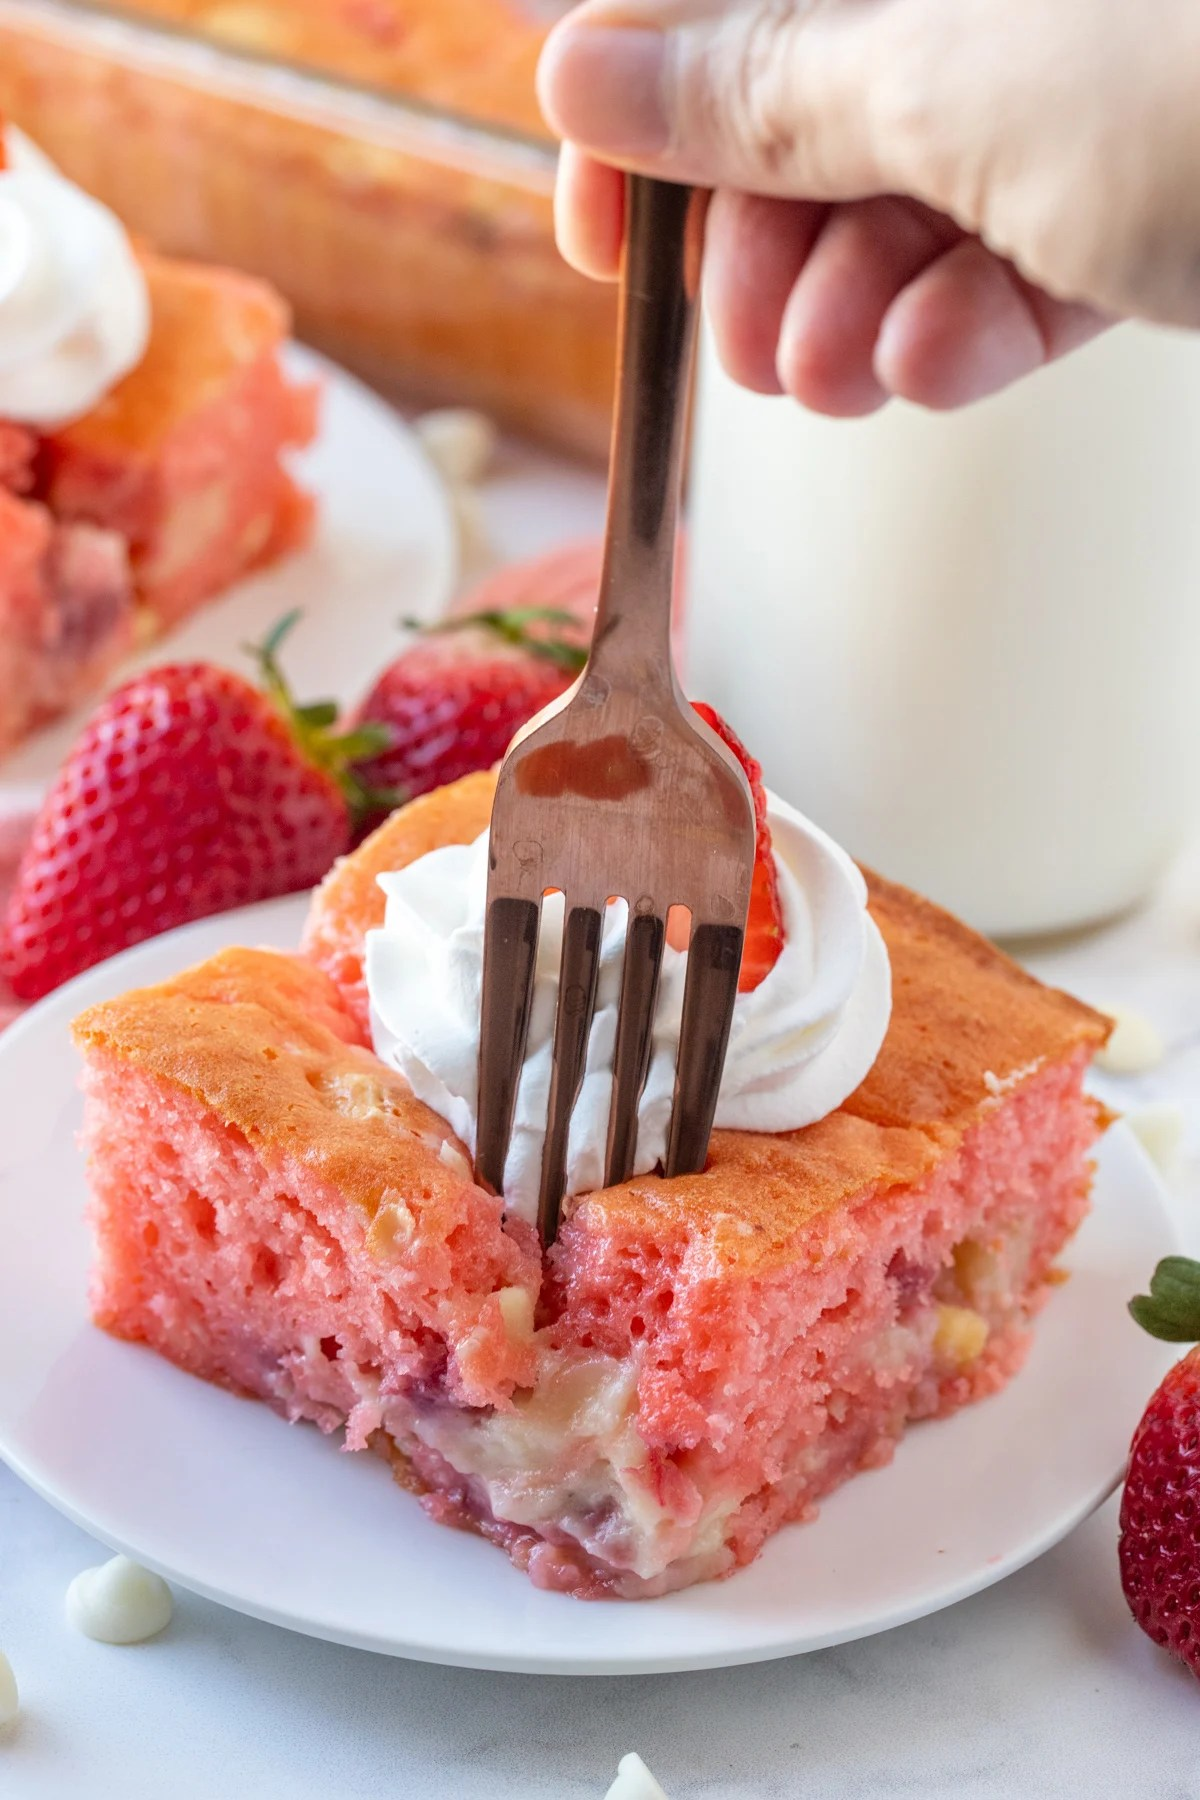 Fork going into slice of Strawberry Earthquake Cake